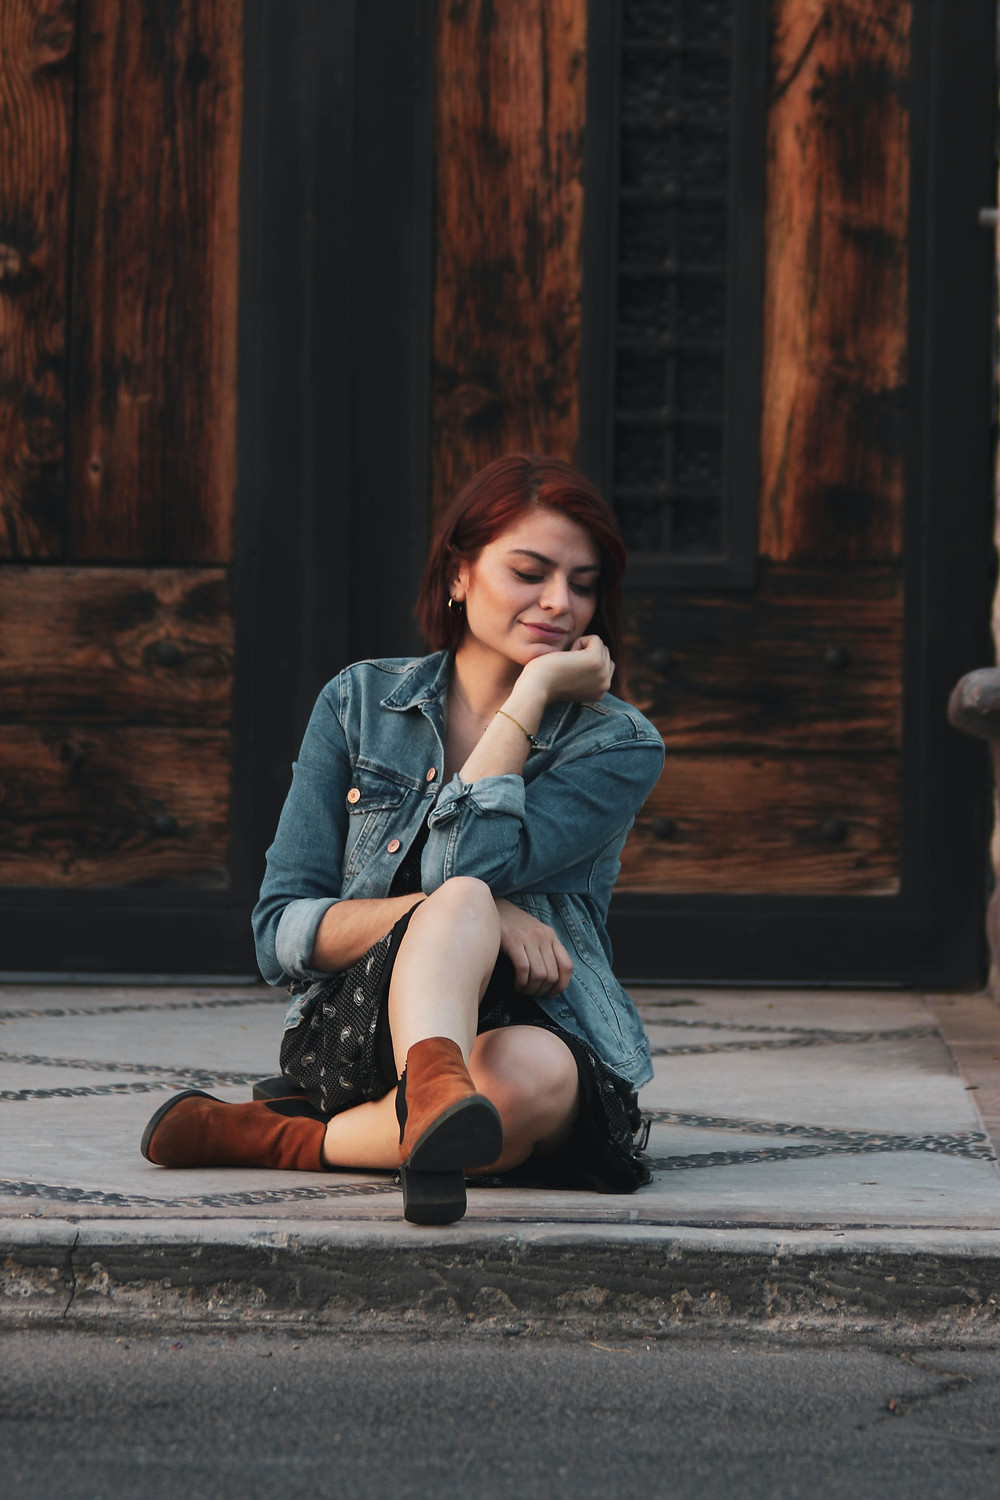 woman smiling and sitting on the ground with her leg out